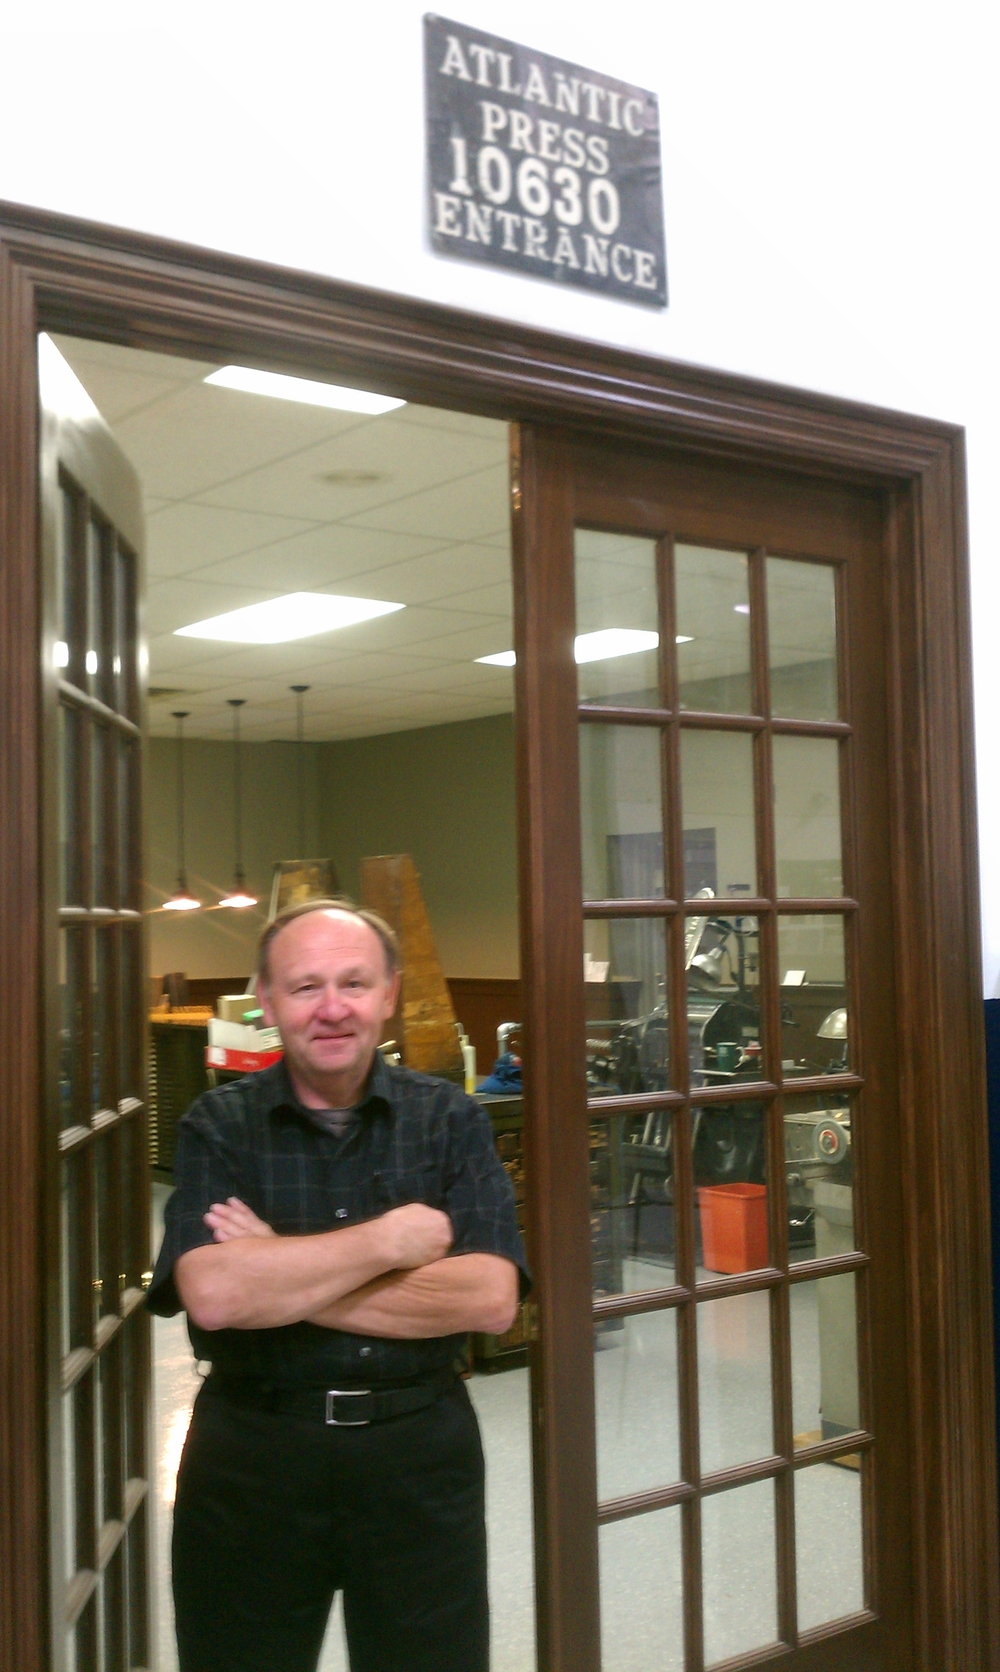 John W. Sanders, the Steve Jobs of Letterpress Printing, has been passionately printing for more than 42 years.